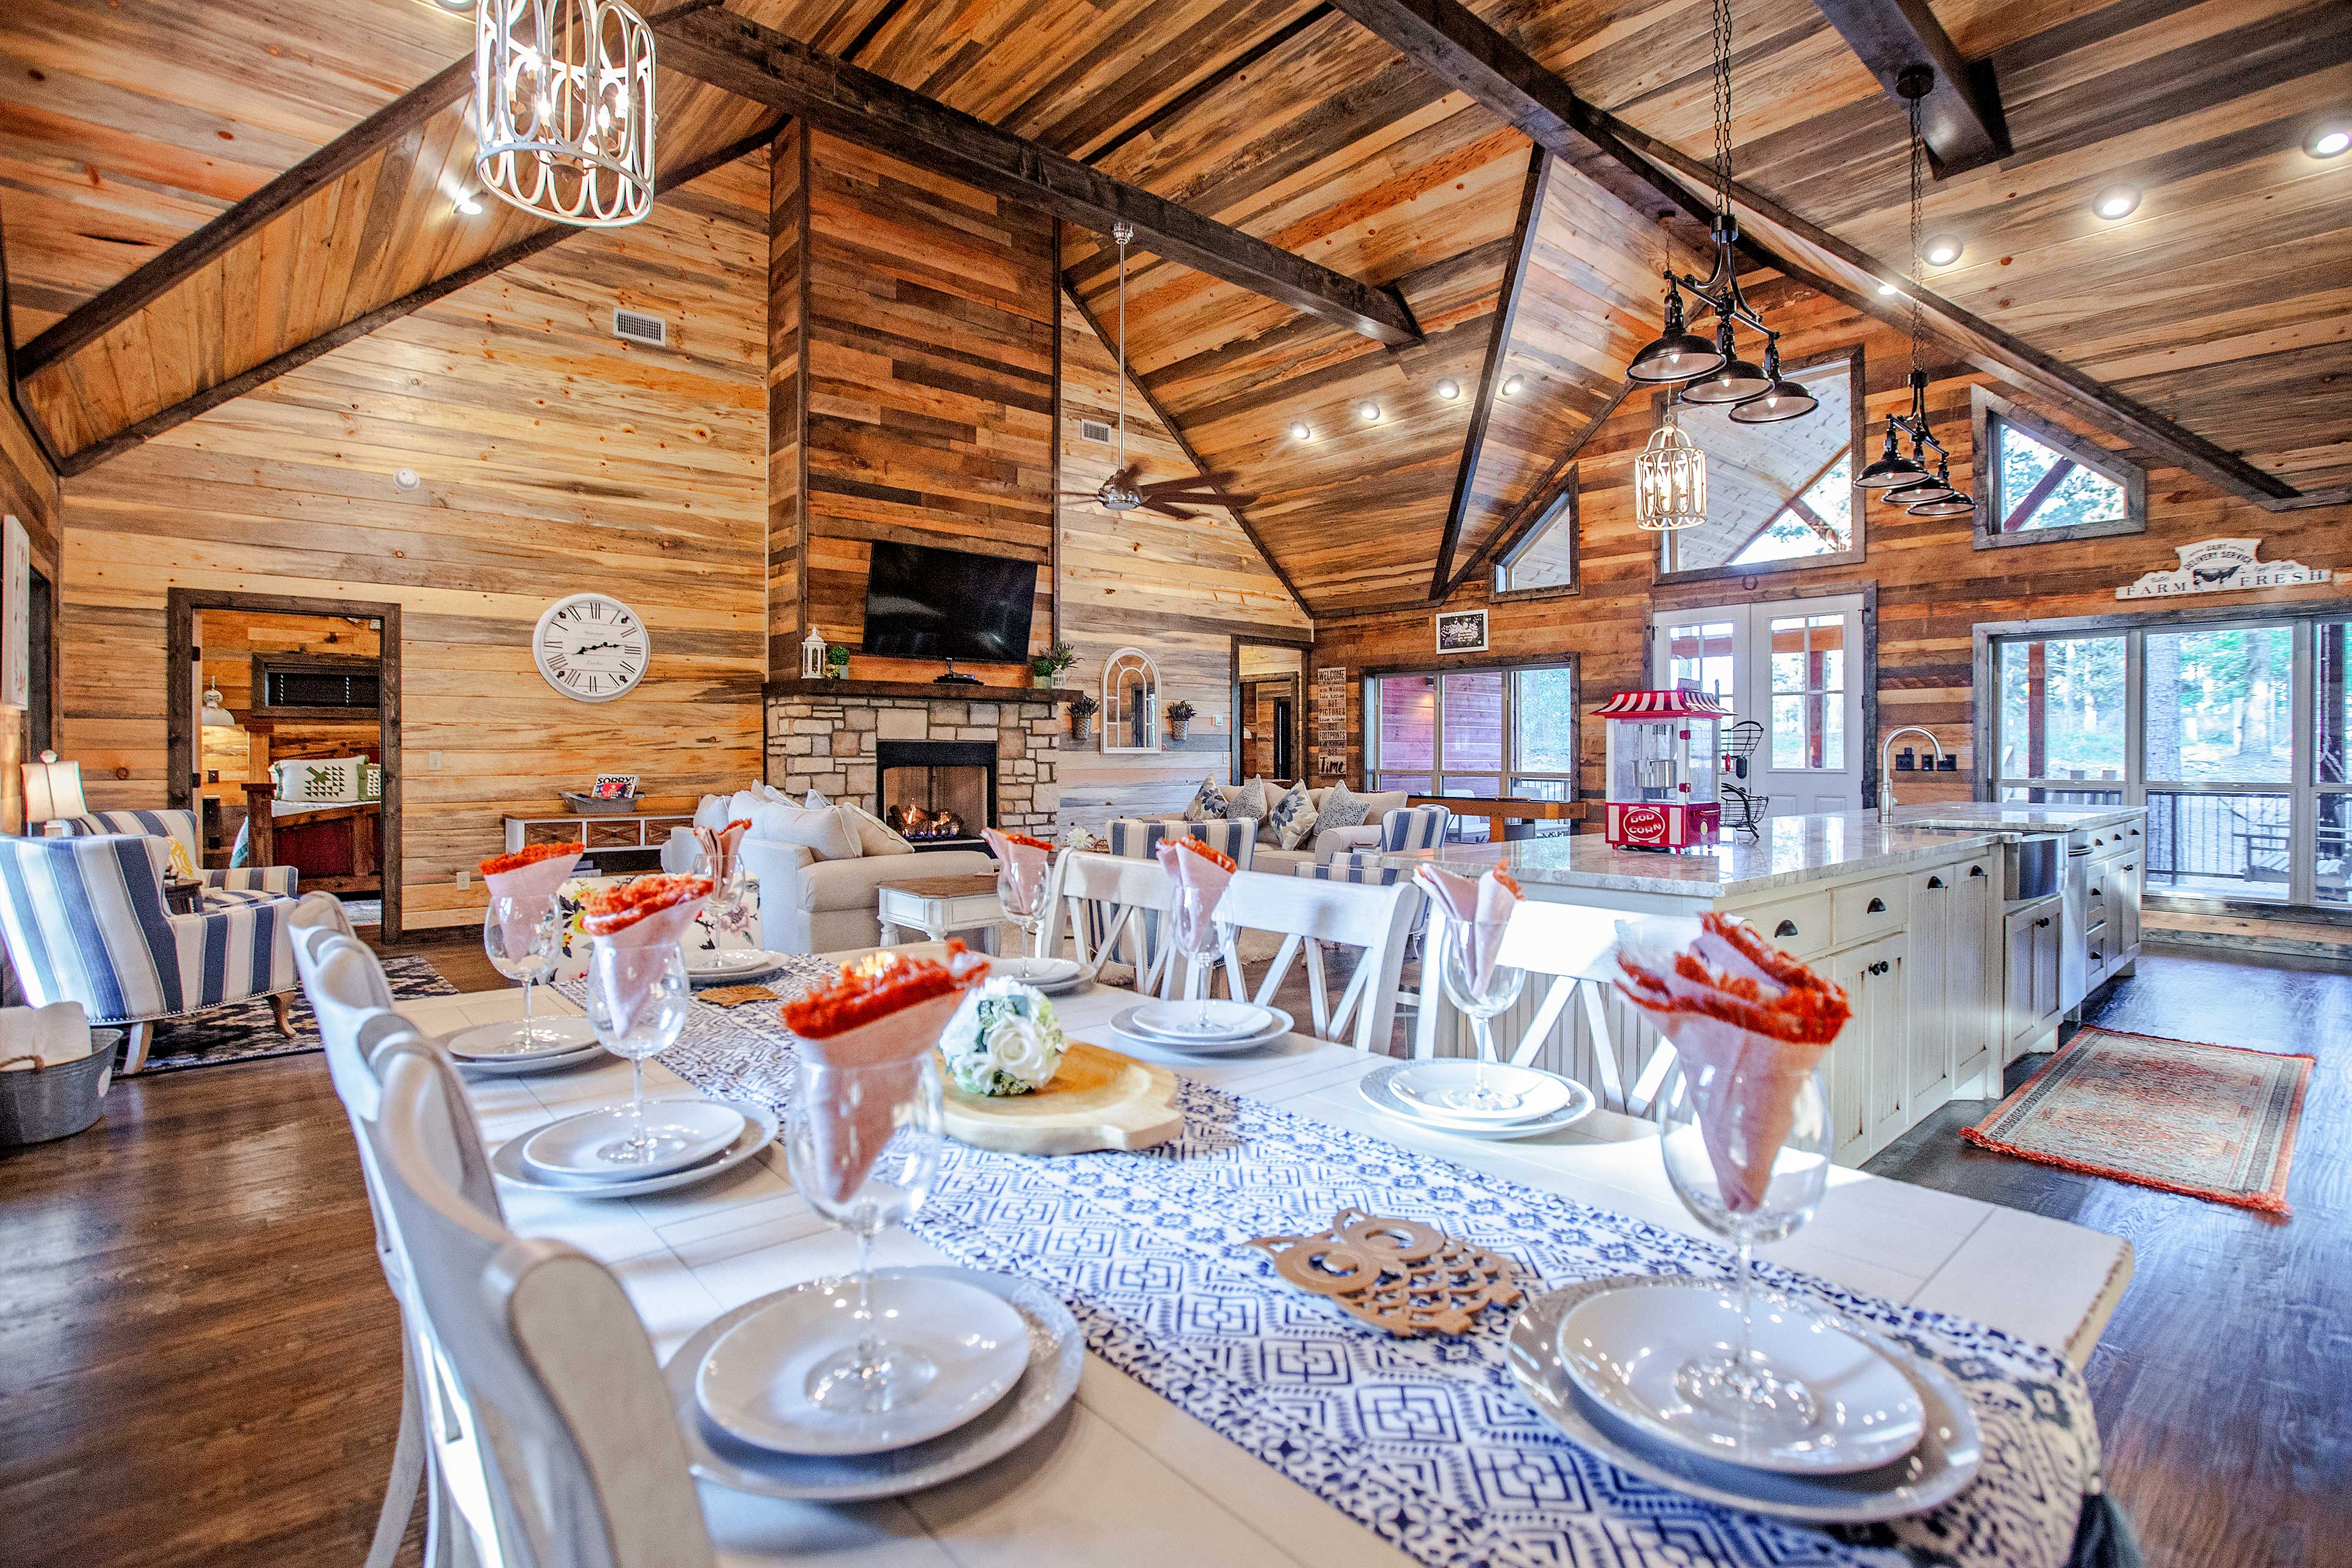 Host memorable family meals at this chic 8-person dining table.